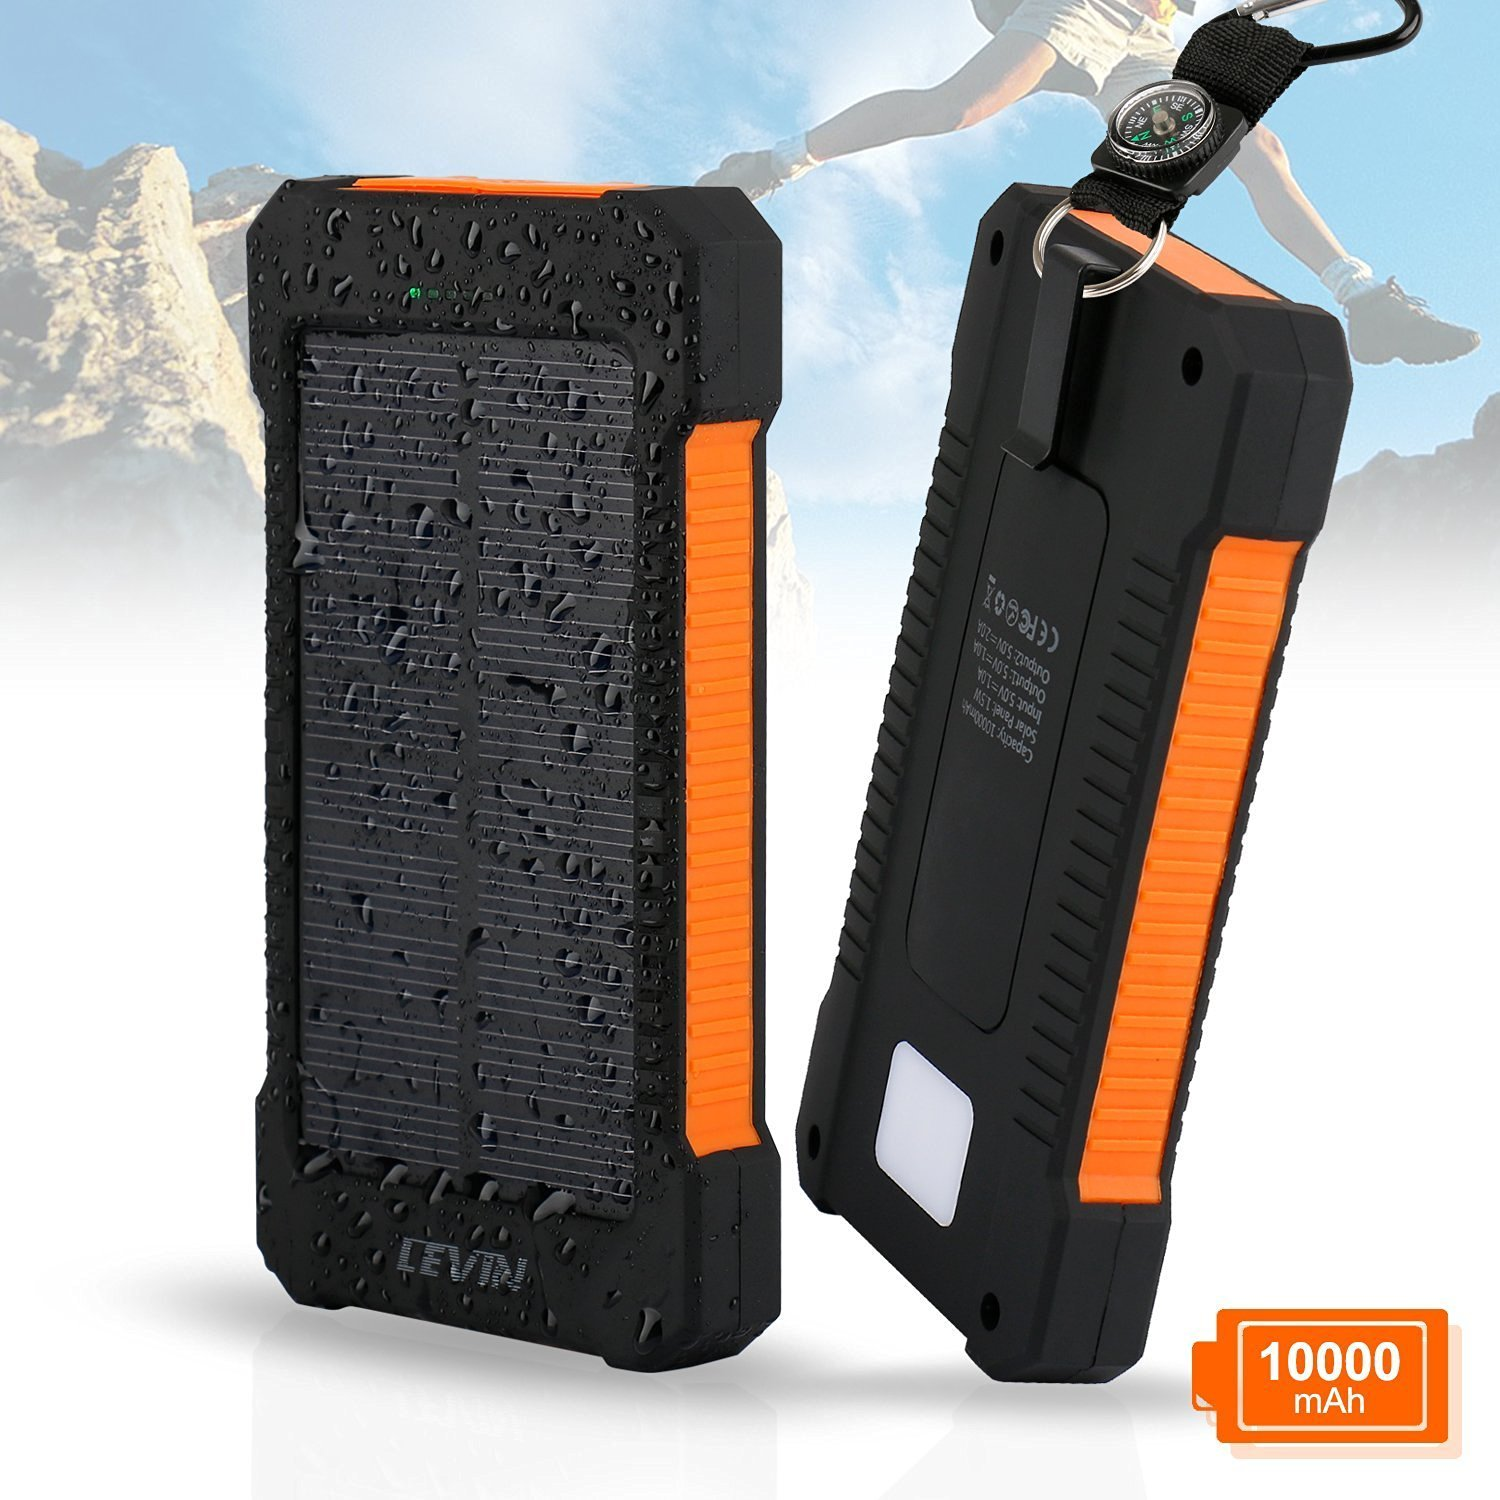 Levin Solar Charger 10000 mAh USB Solar Panel Portable Charger for iPhone, Android Smart Phone, Windows Phone and Tablets – Orange